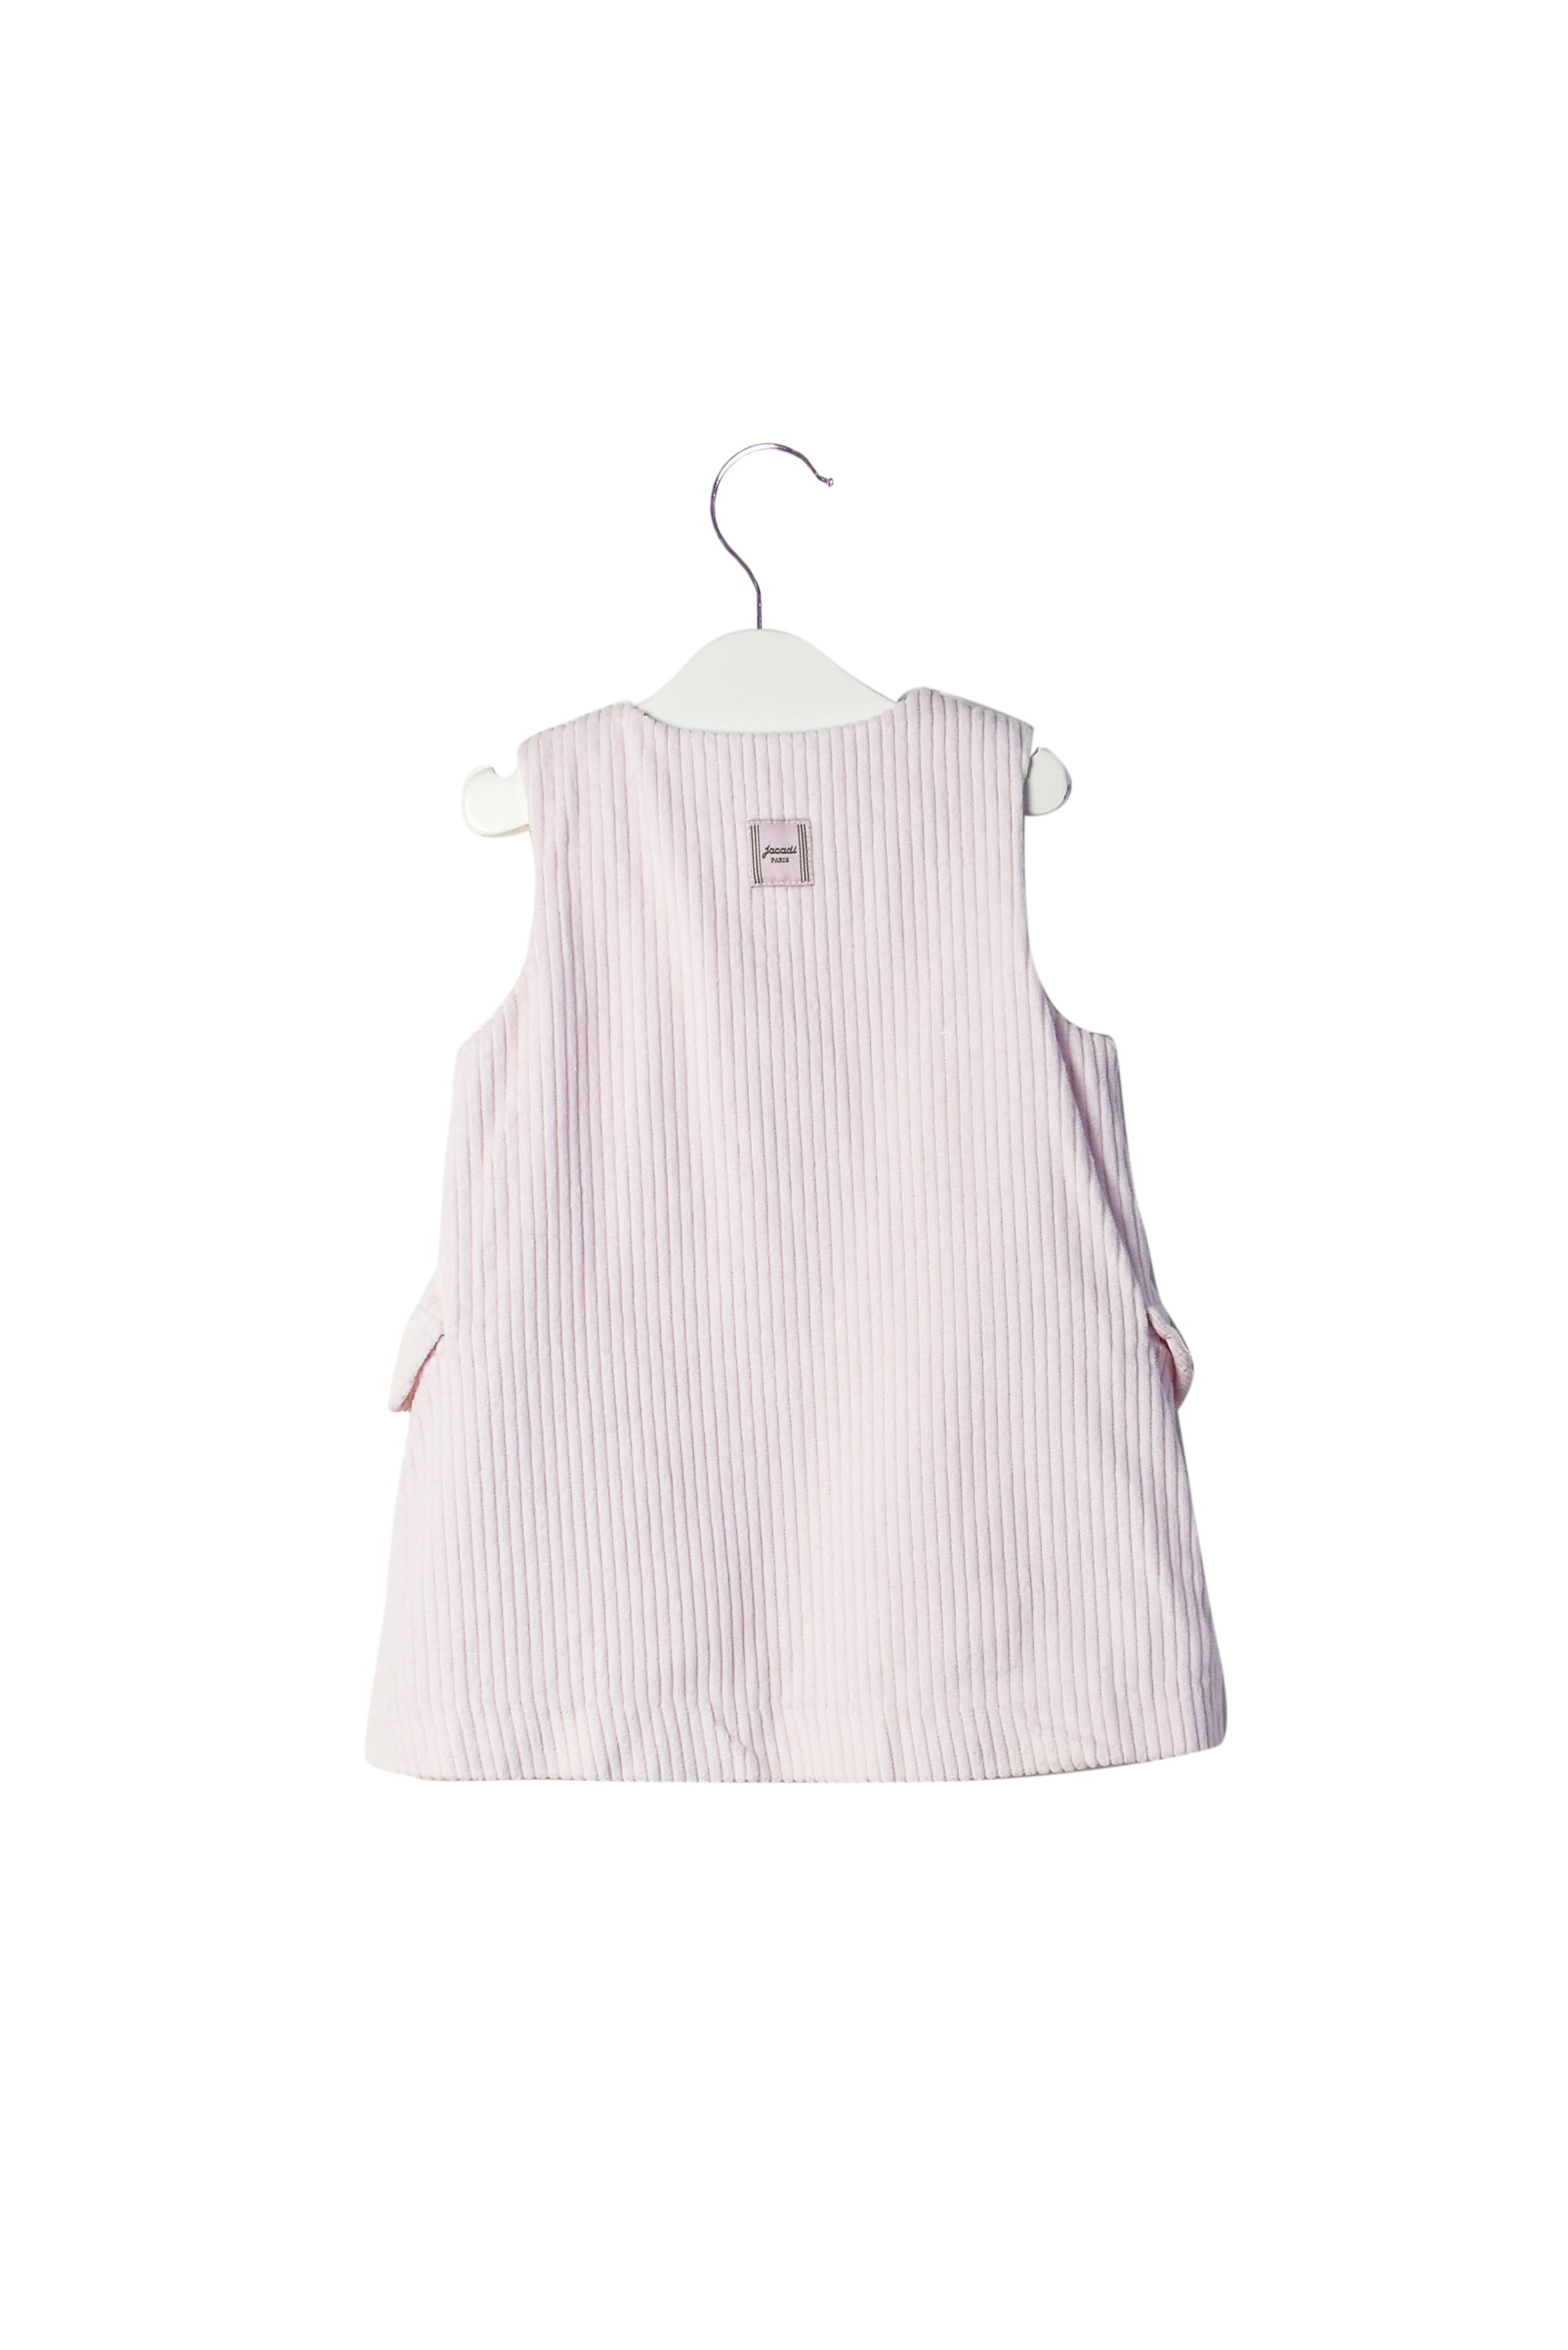 10007220 Jacadi Baby~ Dress 12M at Retykle